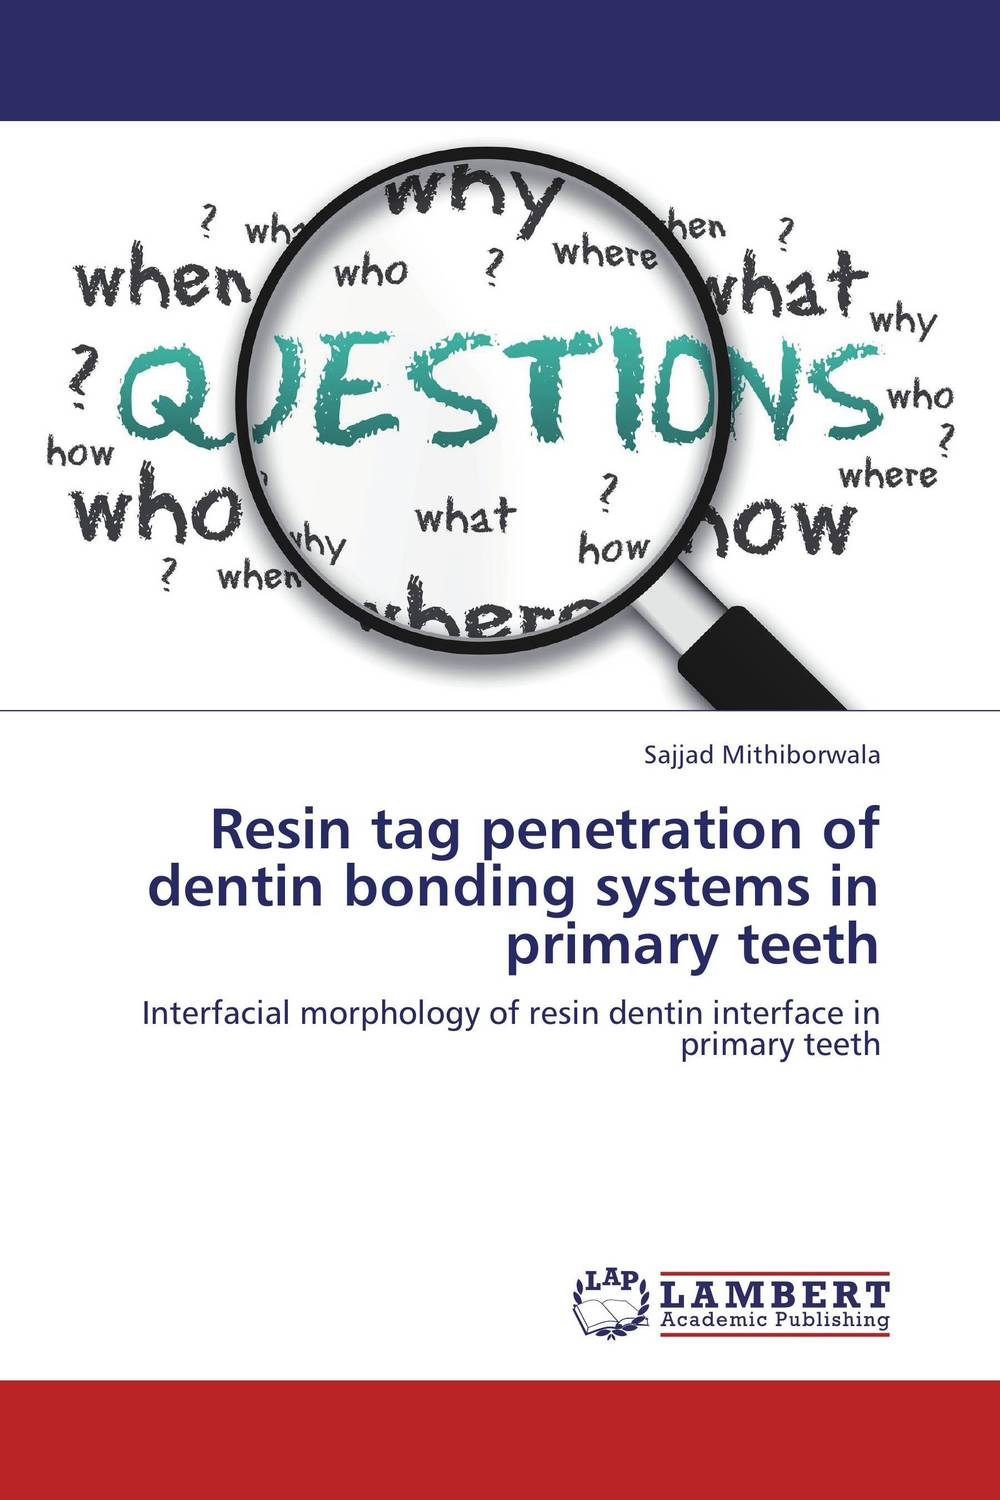 Resin tag penetration of dentin bonding systems in primary teeth et al design туфли et al design модель 2884004